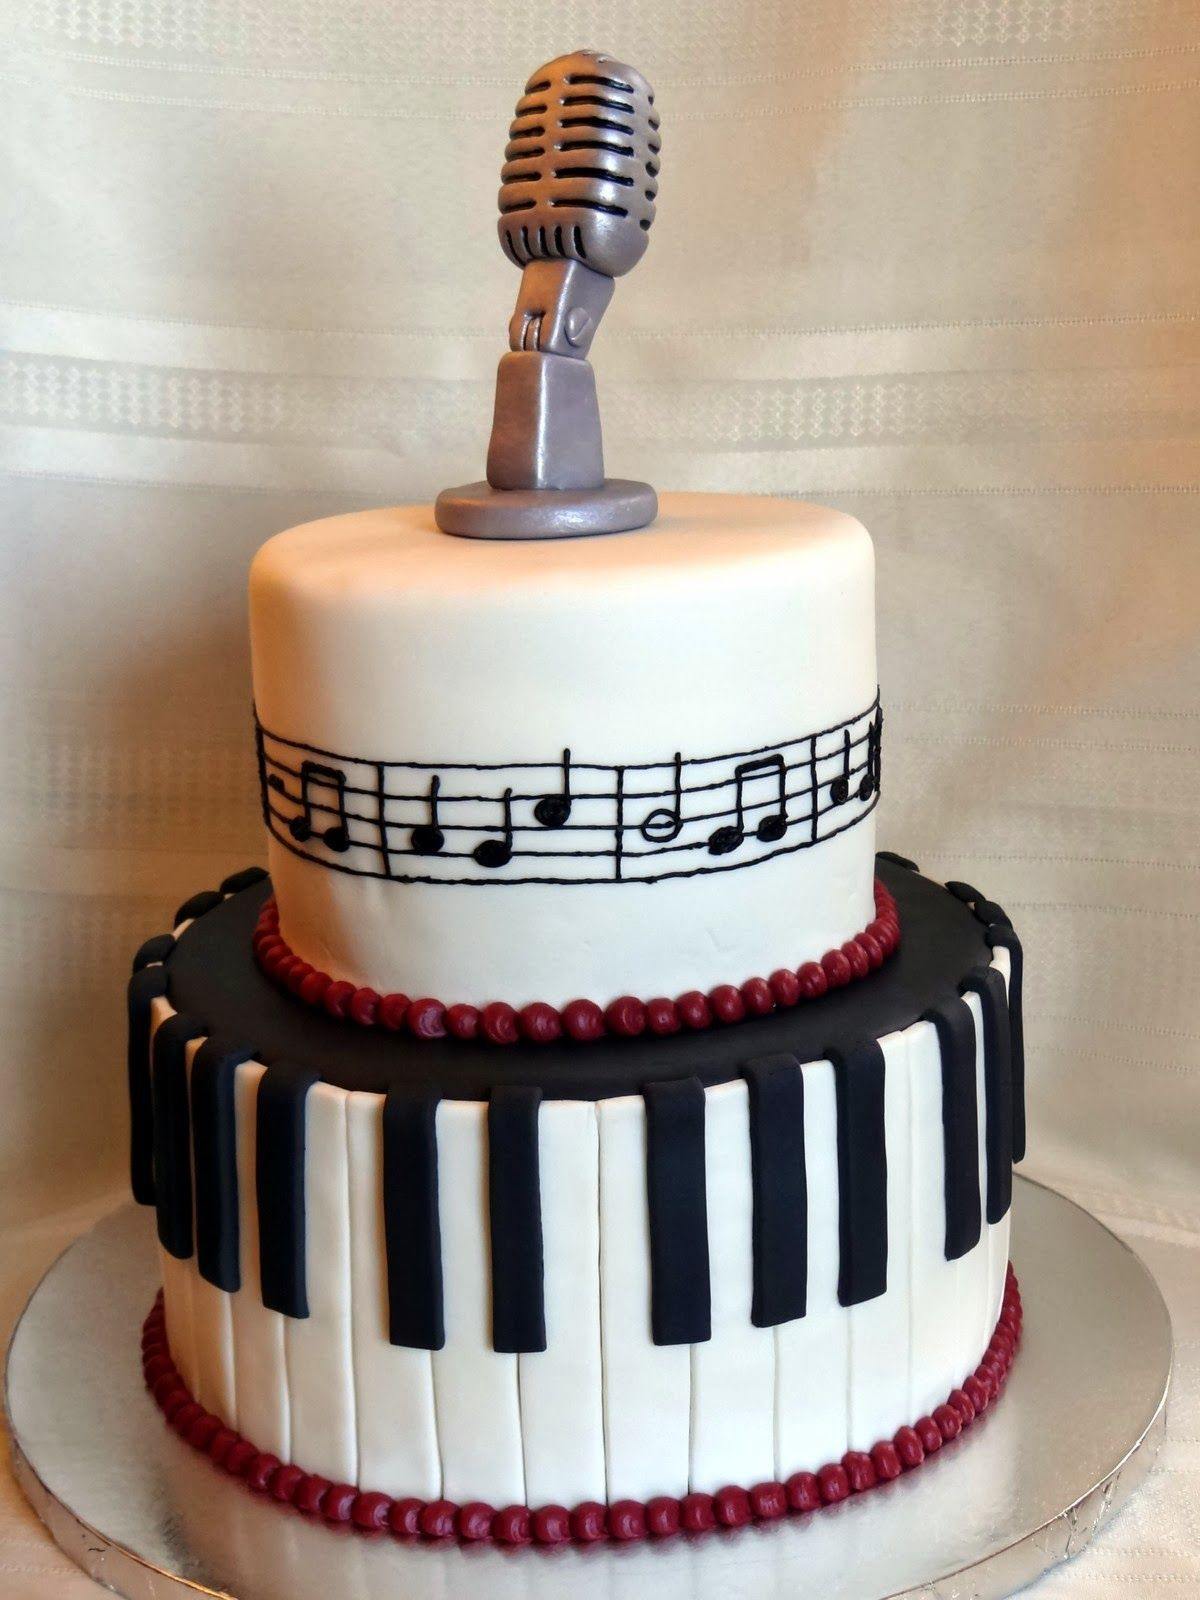 medium resolution of tiers of joy cakery music cake with keyboard microphone music microphone cupcake toppers edible also turner microphone wiring